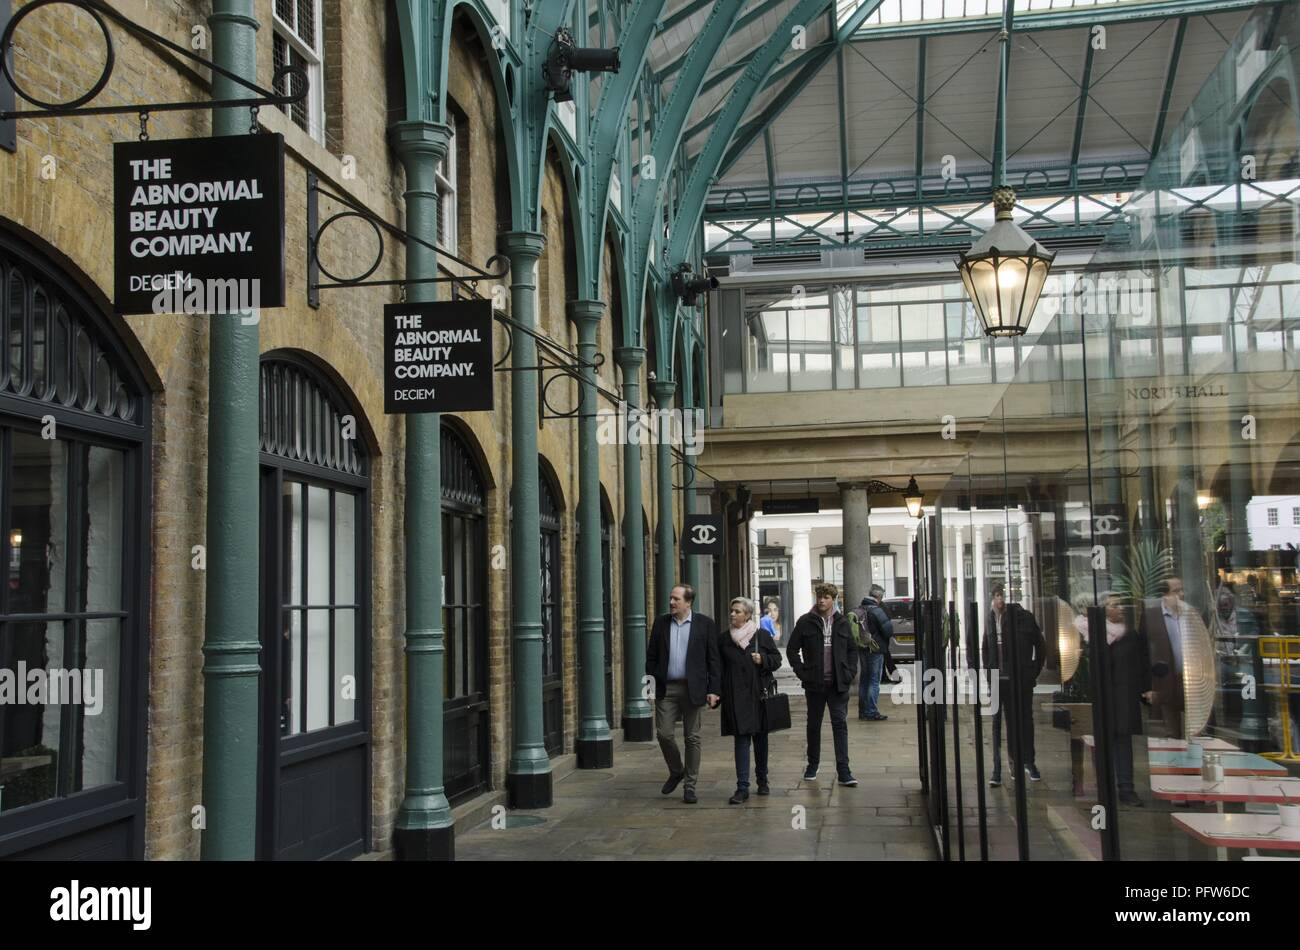 Passers in front of the 'Deciem' abnormal beauty company at the north hall of the New Covent Garden Market, Nine Elms, London, United Kingdom, October 29, 2017. () - Stock Image